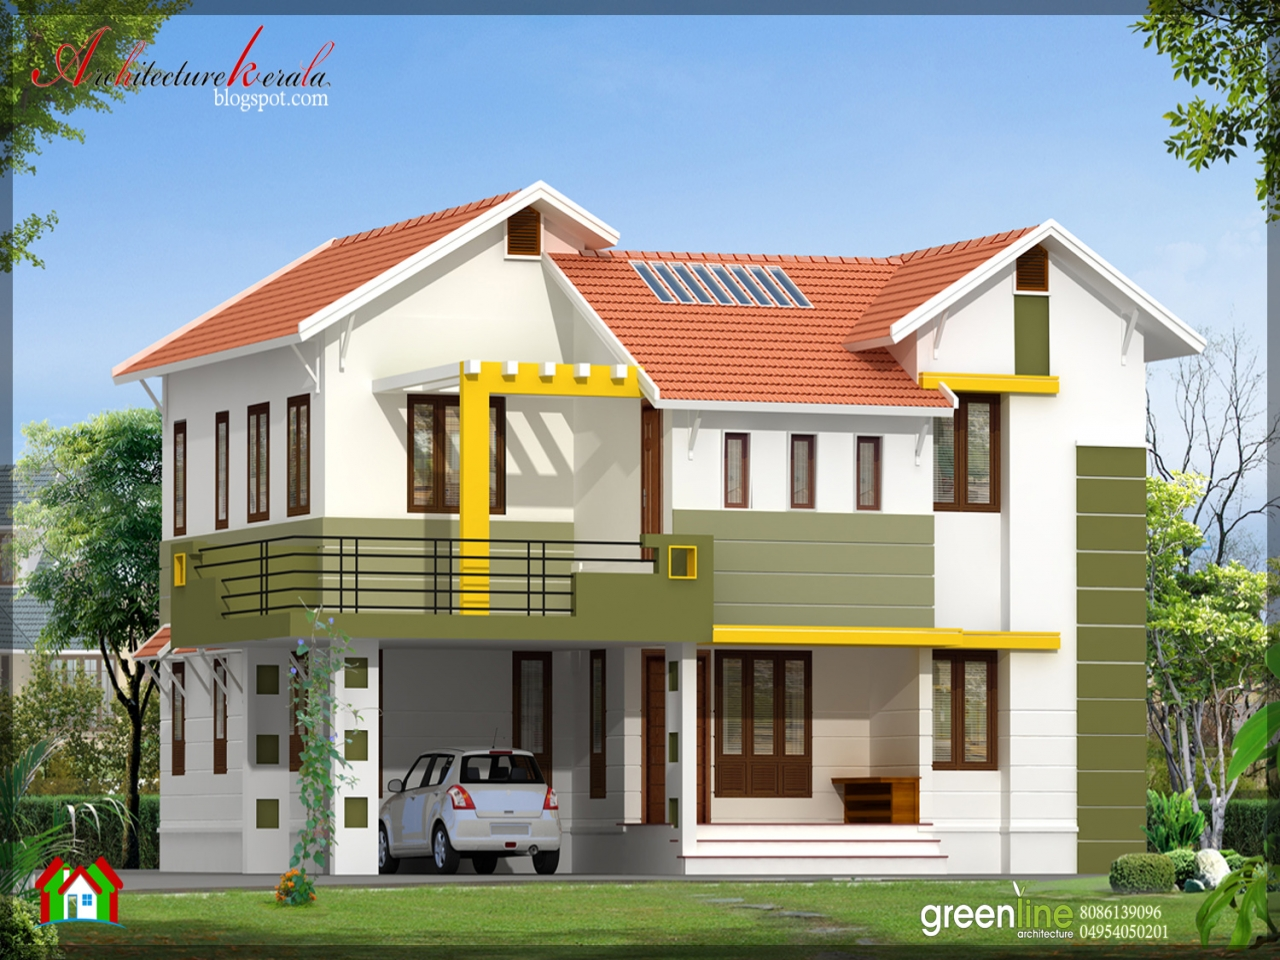 Simple modern house designs simple house design in india for Basic house design